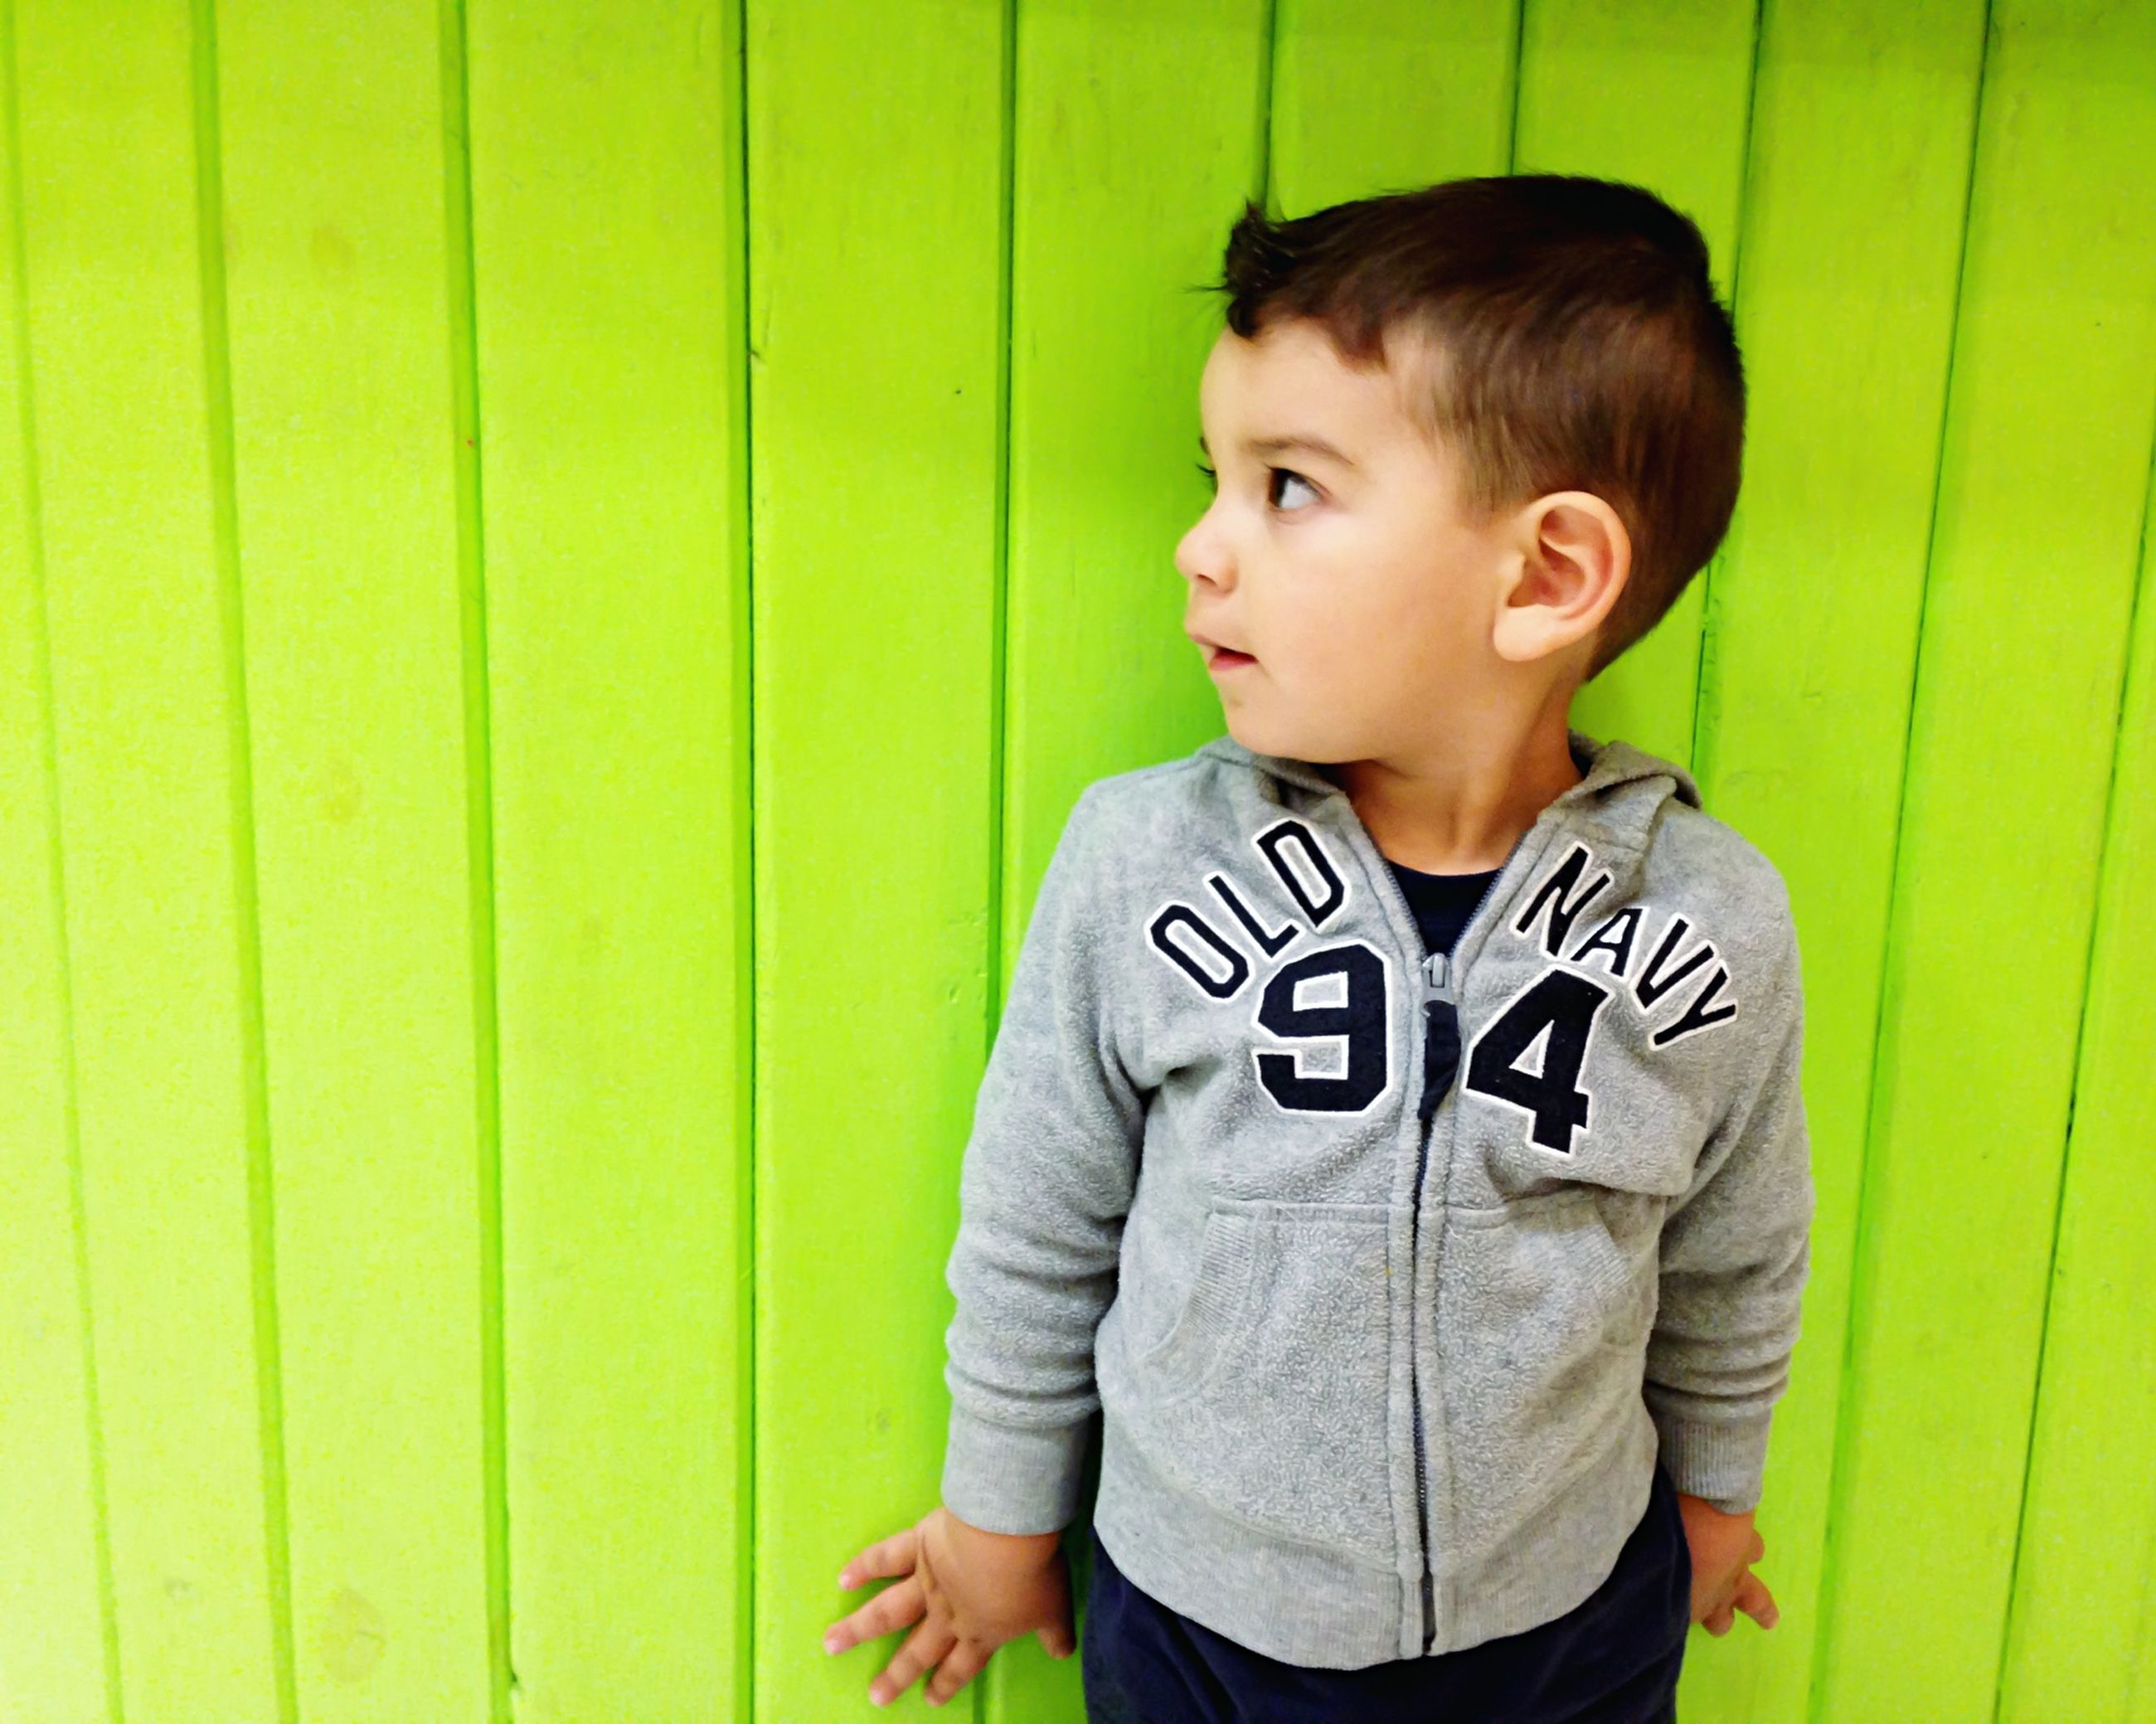 person, casual clothing, lifestyles, portrait, three quarter length, childhood, waist up, front view, standing, looking at camera, leisure activity, elementary age, boys, wall - building feature, smiling, innocence